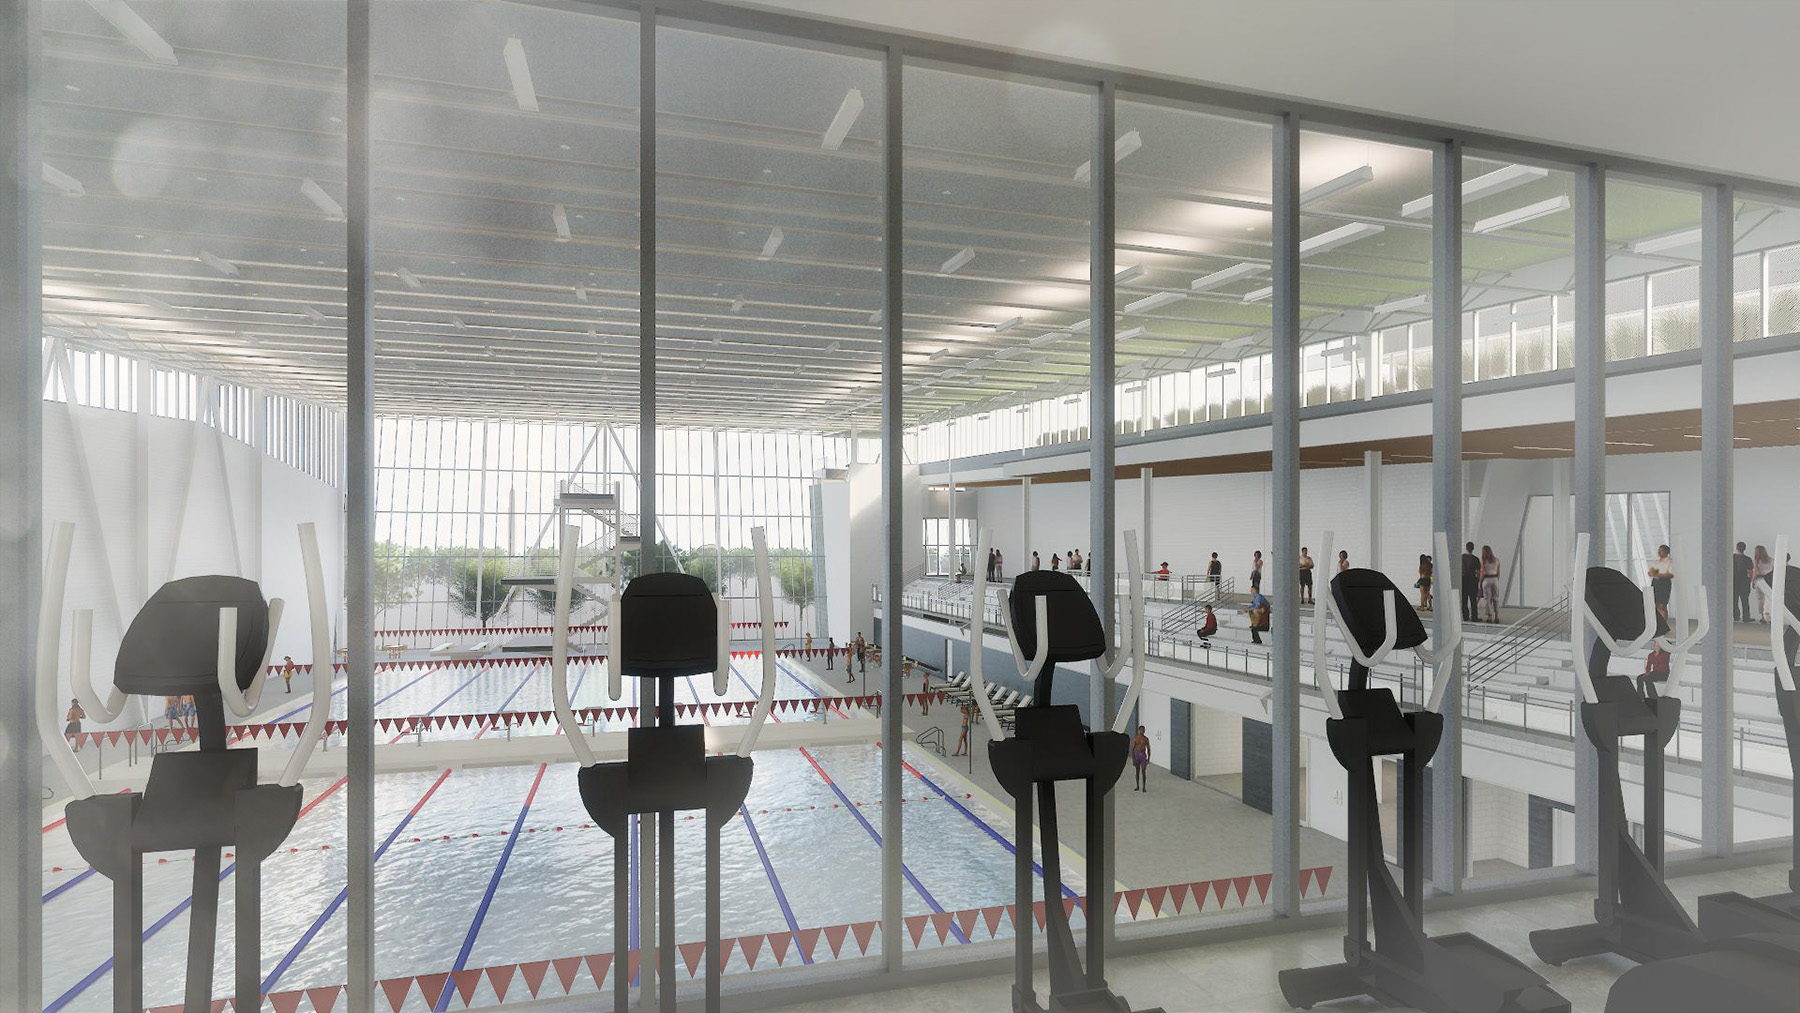 This facility will feature a 50‐meter pool with a 500-seat bleacher, a combination of play and teaching pool, approximately 10,000 SF of health and fitness space, administrative offices, and community rooms.